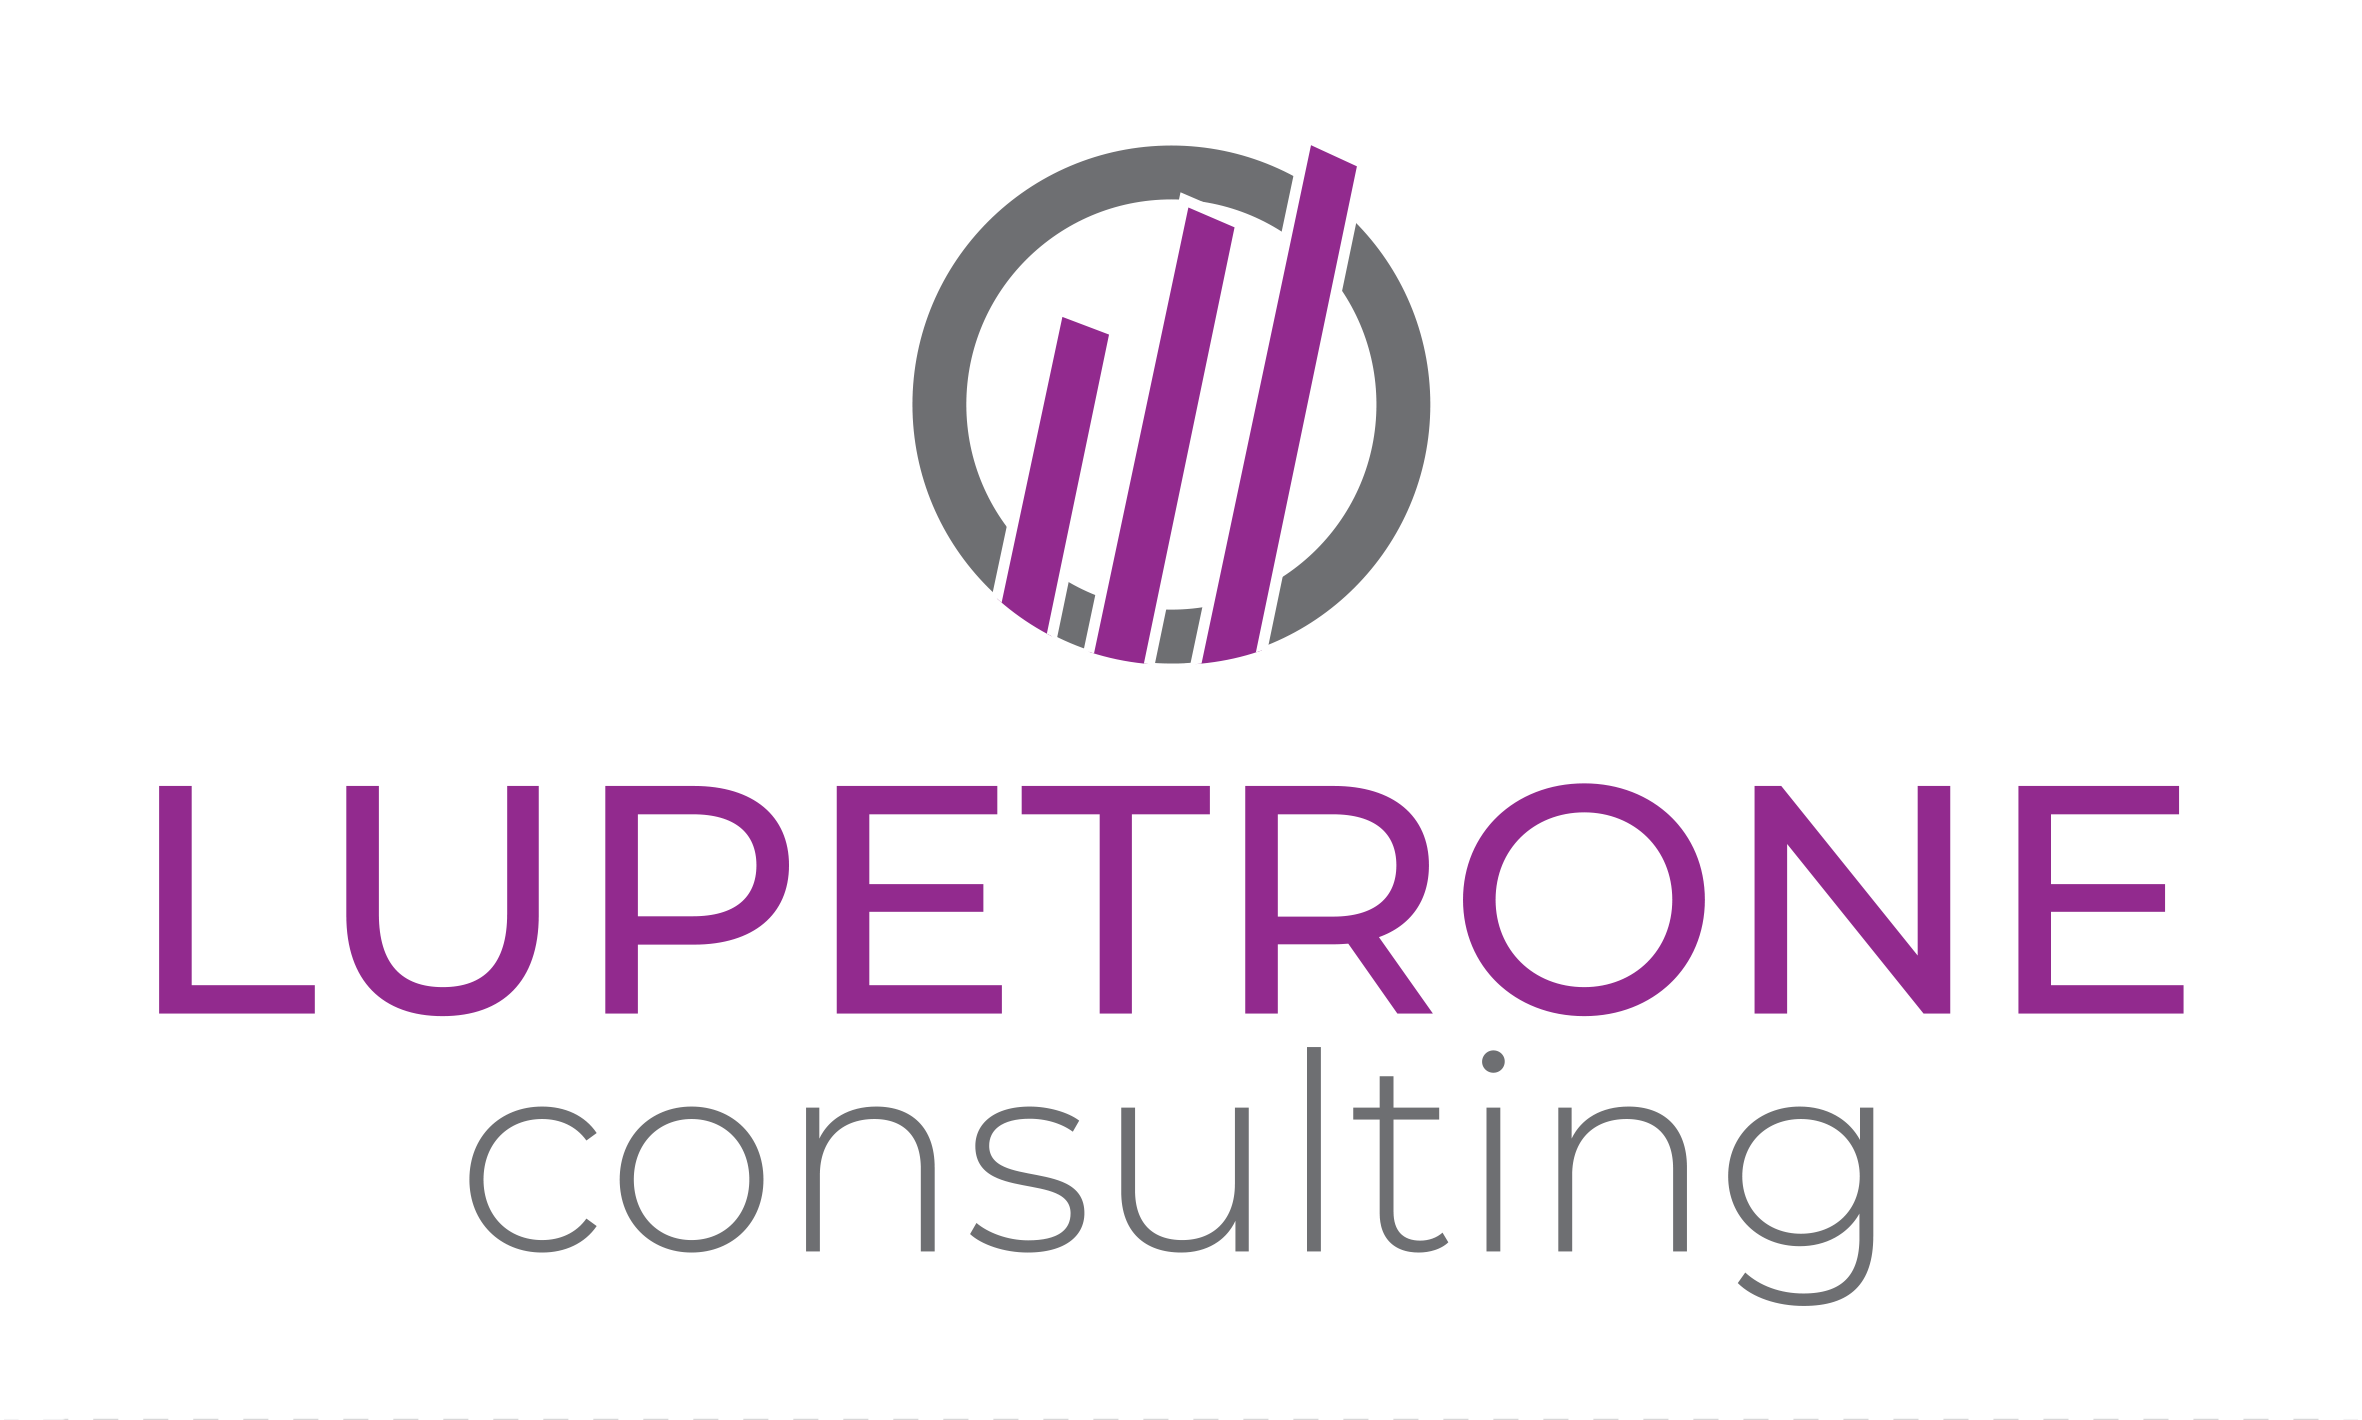 Lupetrone Consulting